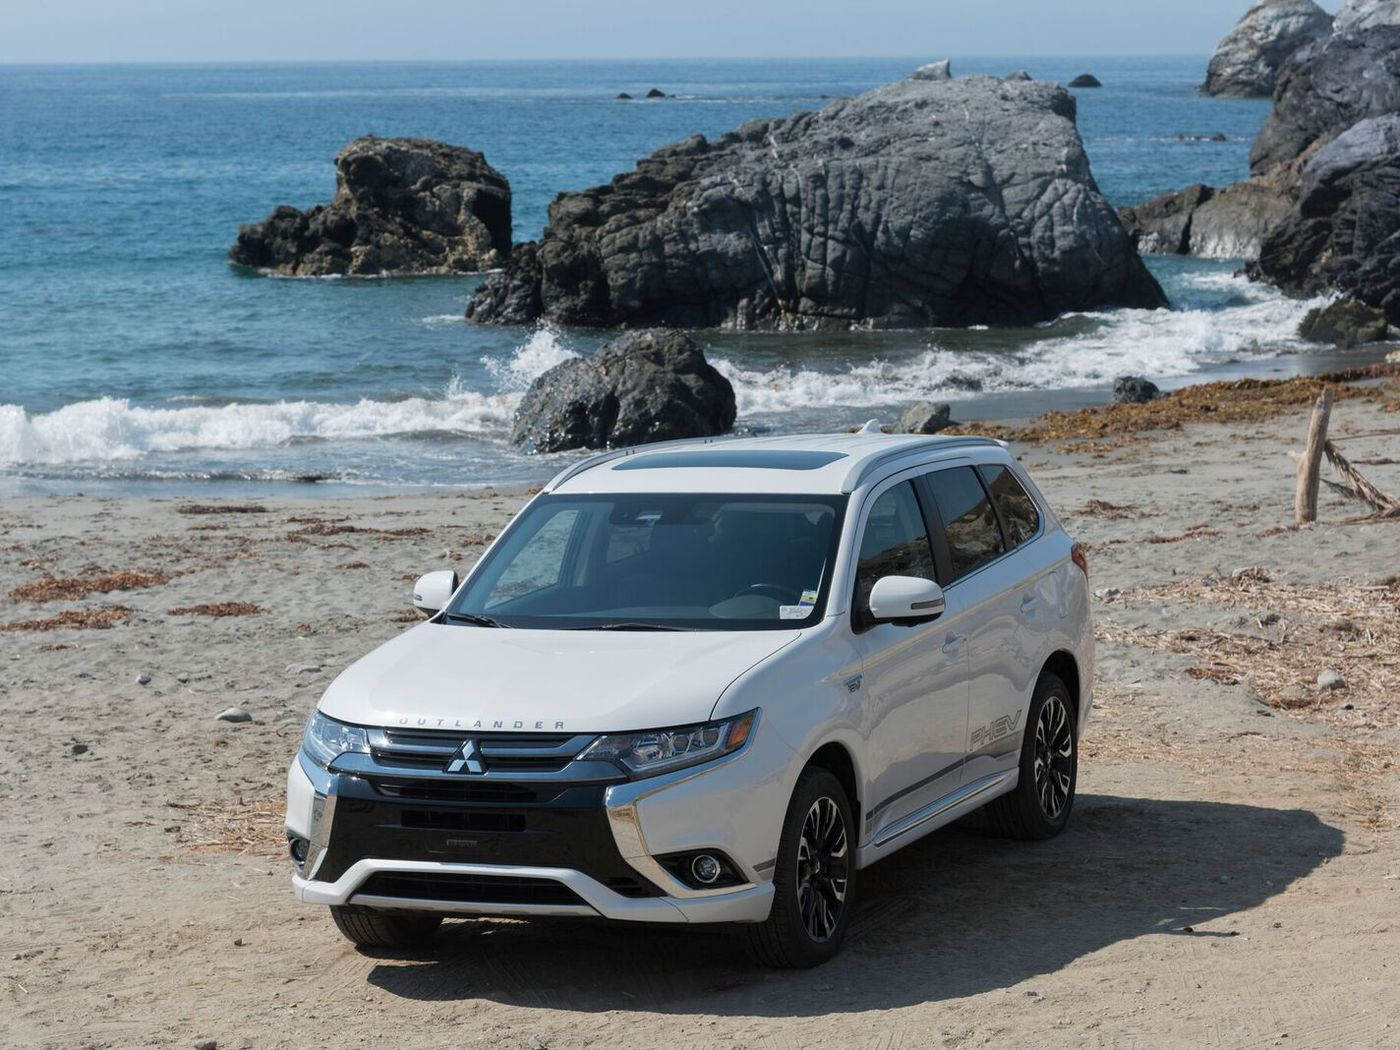 2018 Mitsubishi Outlander PHEV first drive: winner by default - The ...